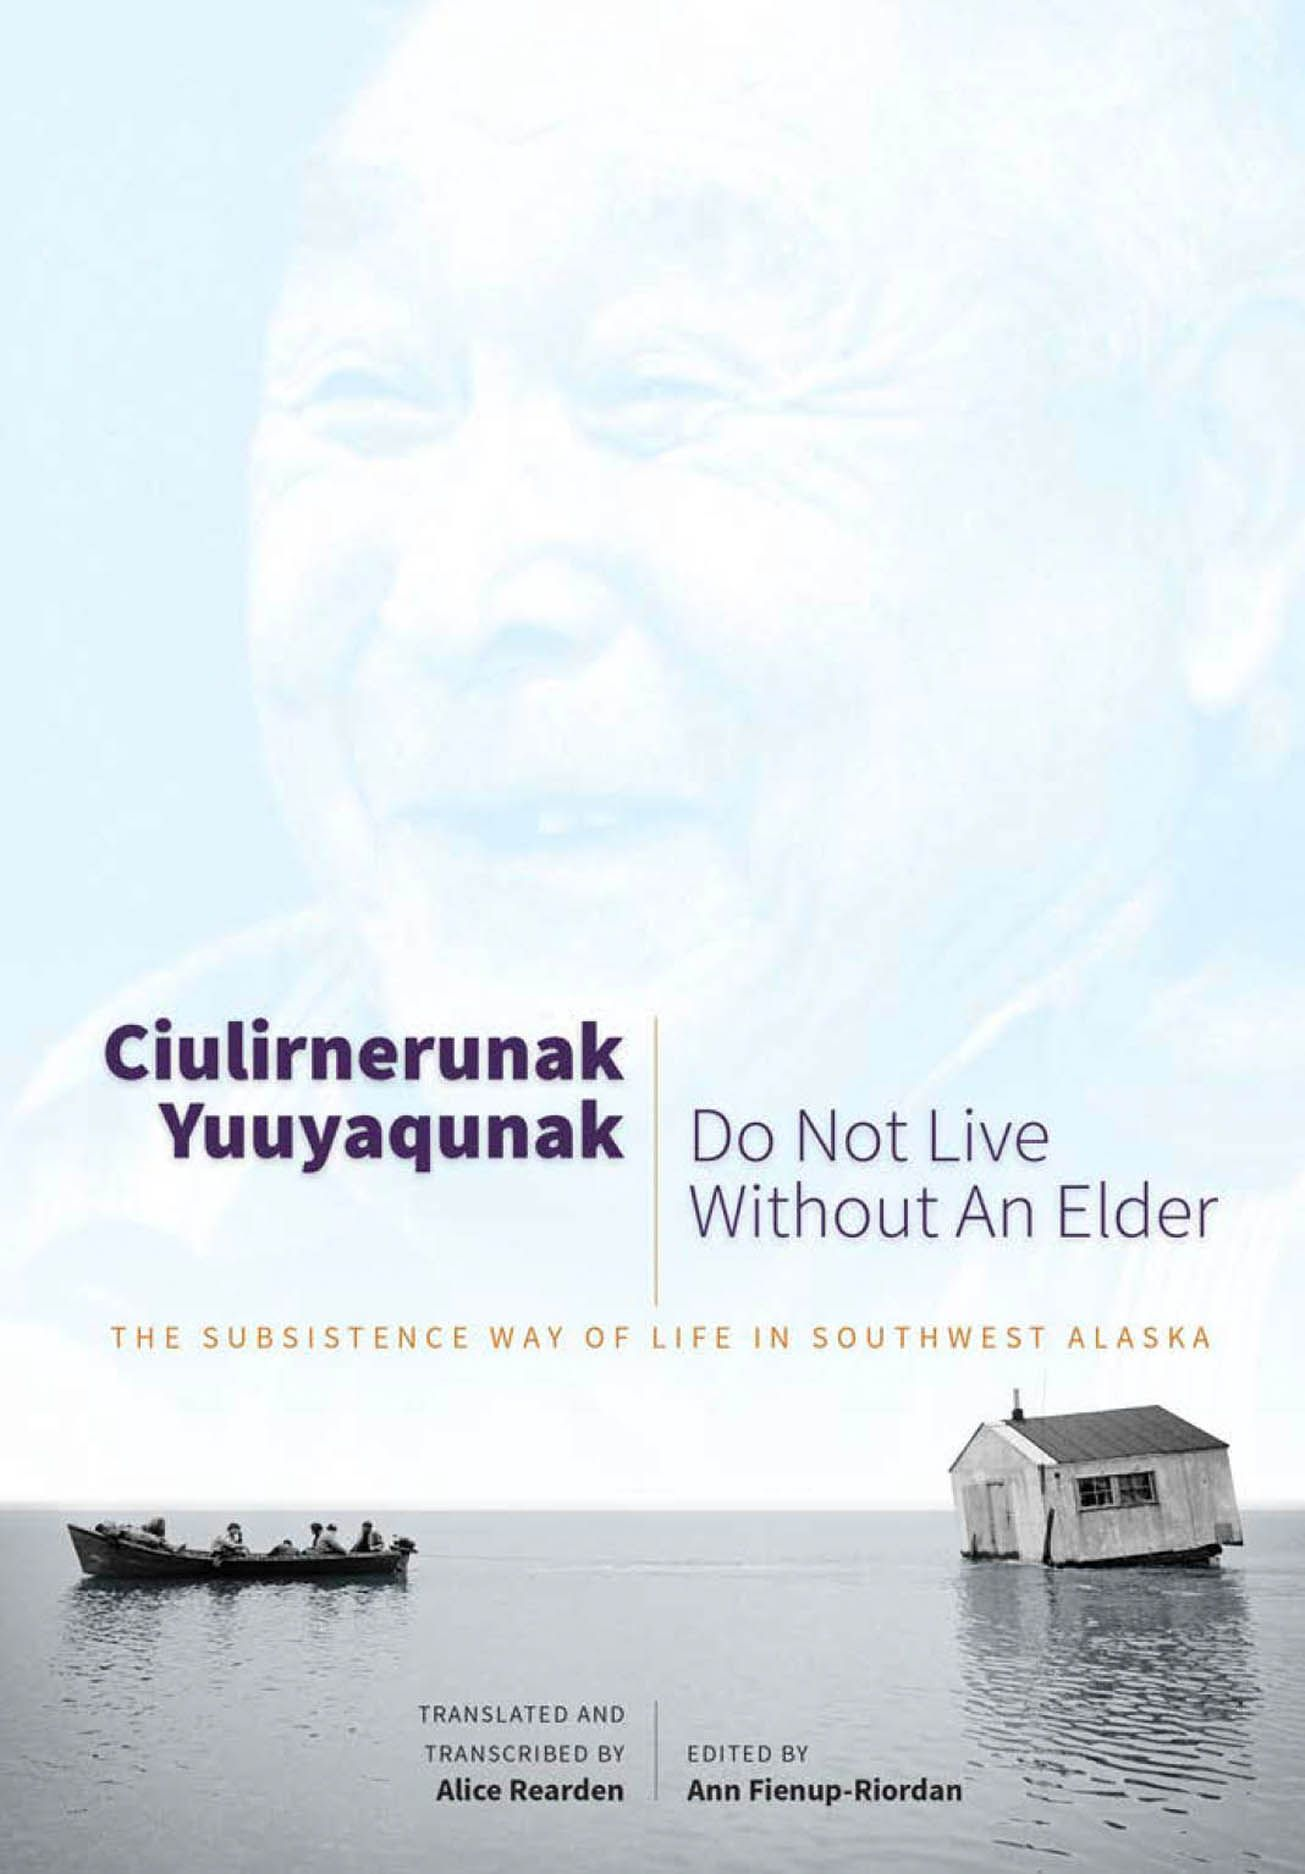 Ciulirnerunak Yuuyaqunak/Do Not Live Without an Elder: The Subsistence Way of Life in Southwest Alaska